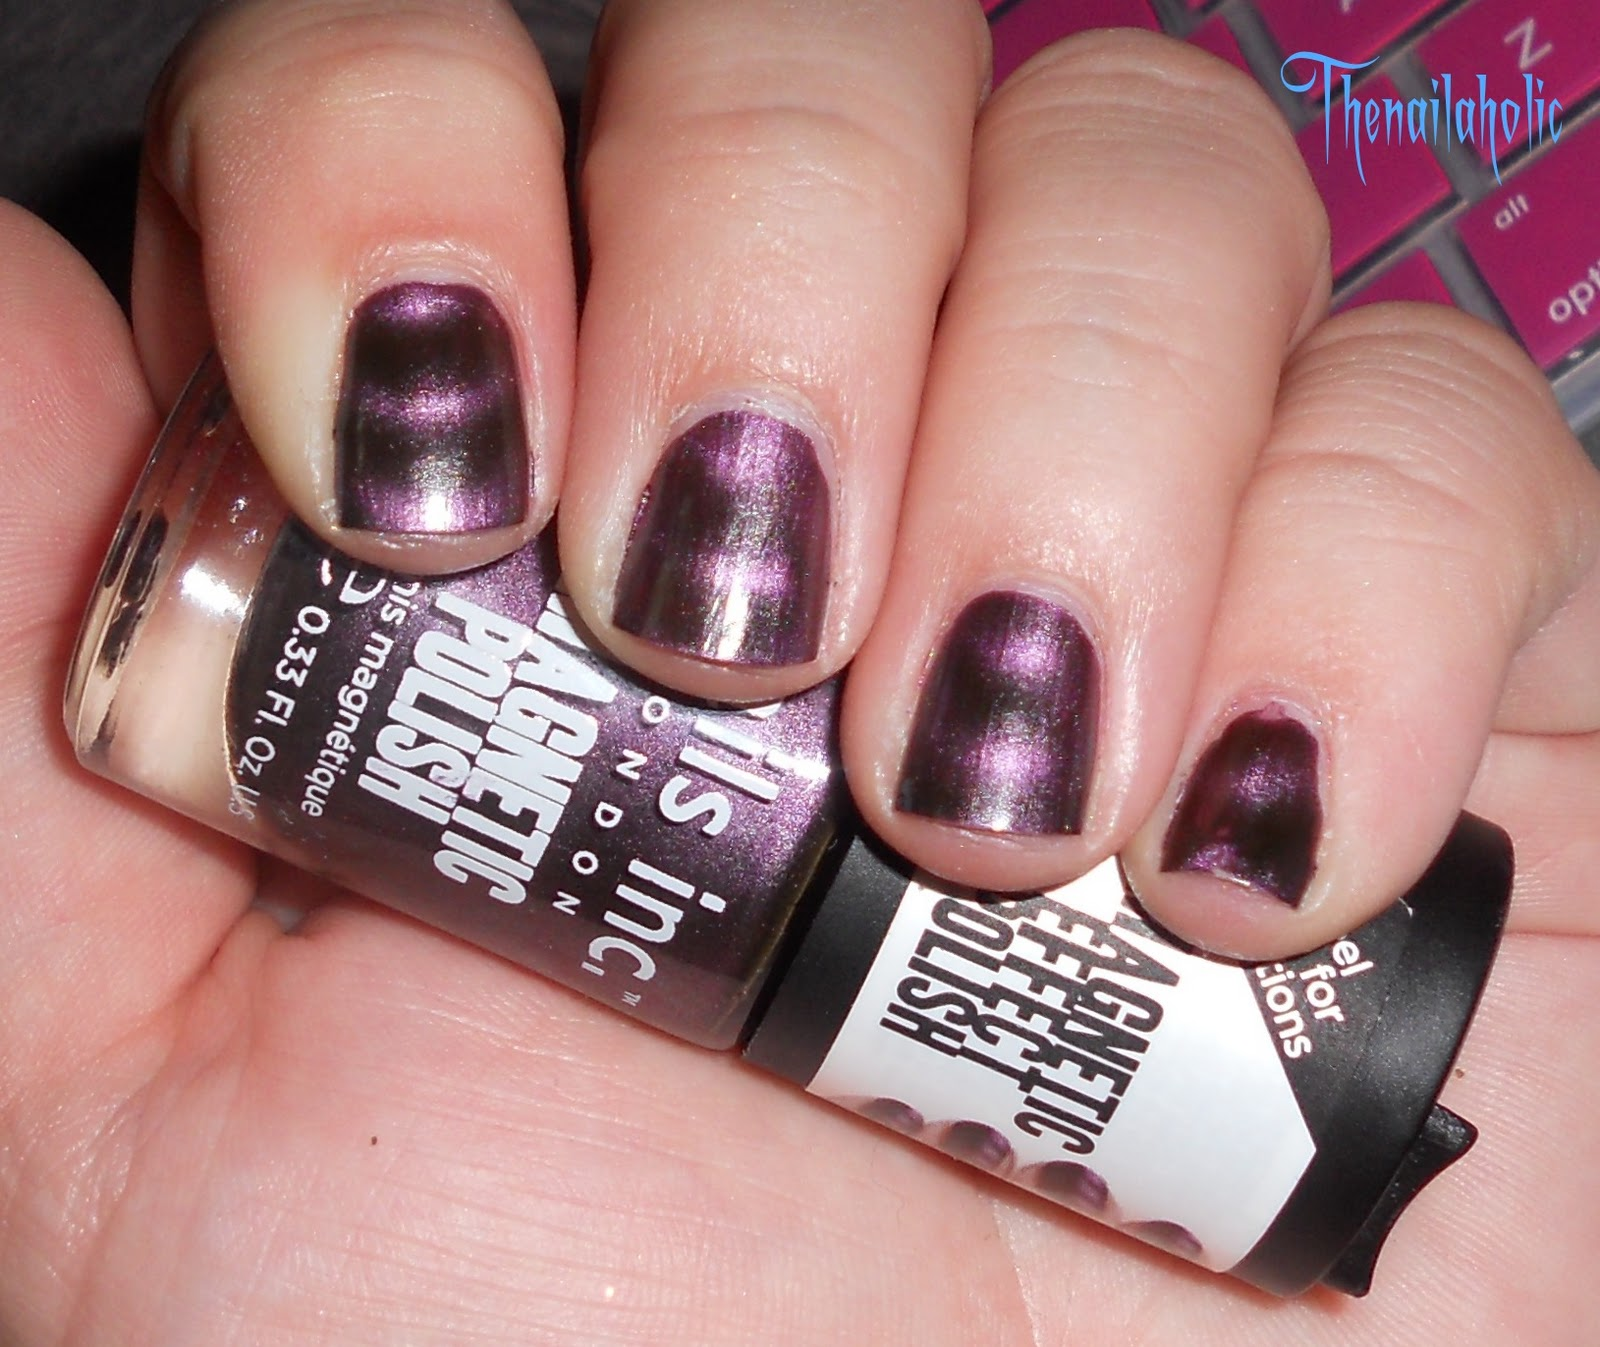 The Nailaholic: WARNING: Magnetic Polishes Are Not MRI Safe